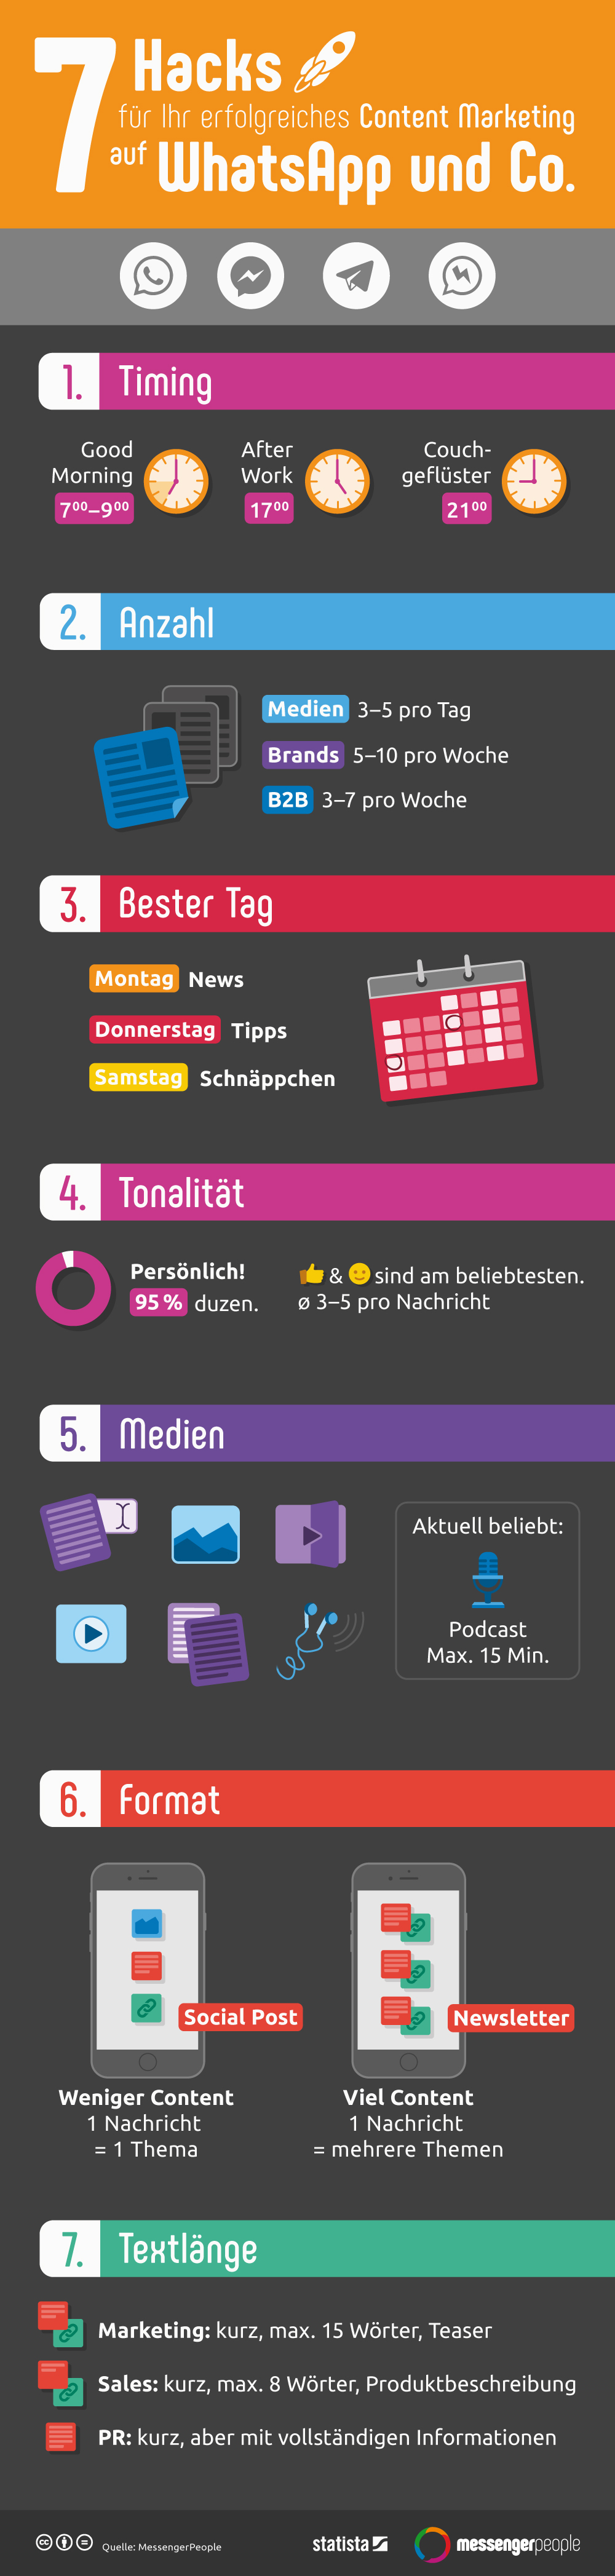 Infografik: 7 Hacks für Content Marketing auf WhatsApp und Co.  | Statista